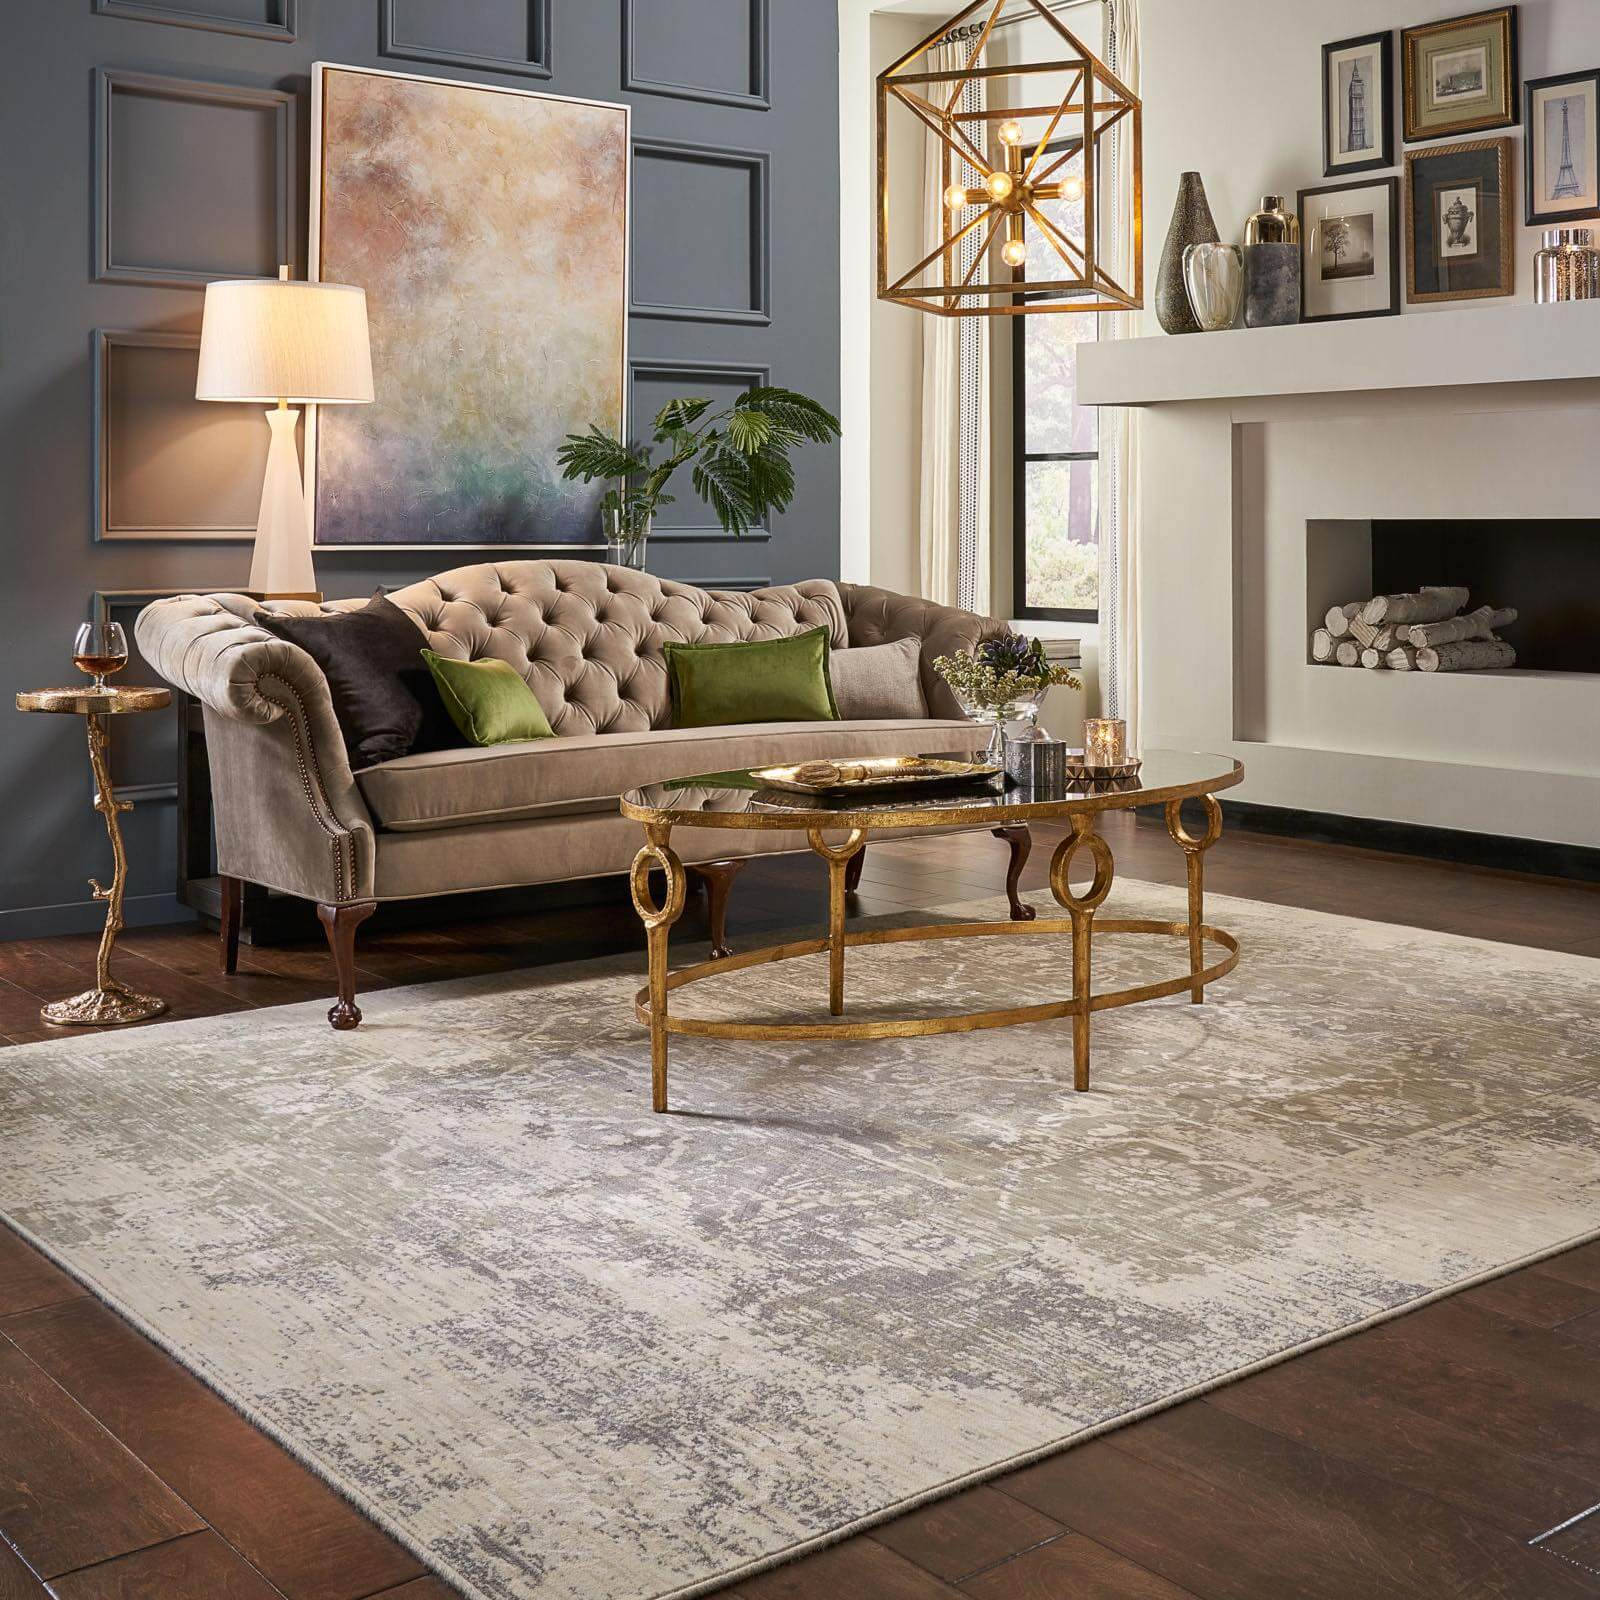 Area rug | The Flooring Place